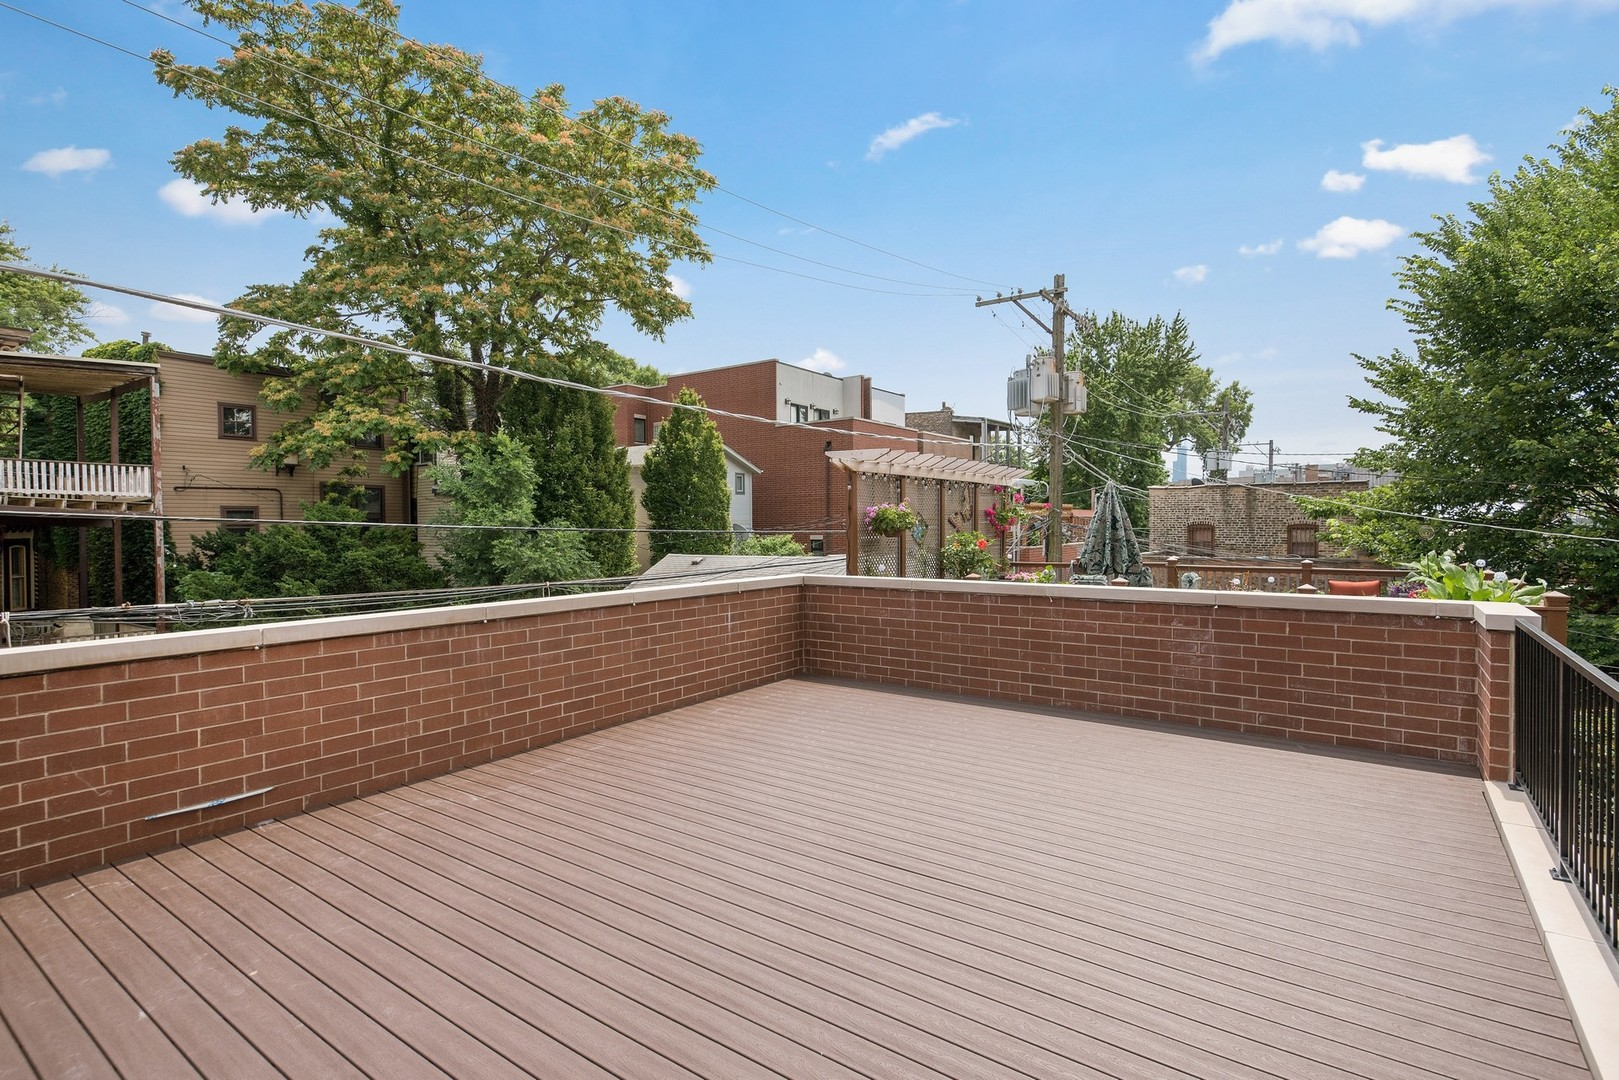 2243 Halsted Unit Unit 1n ,Chicago, Illinois 60614